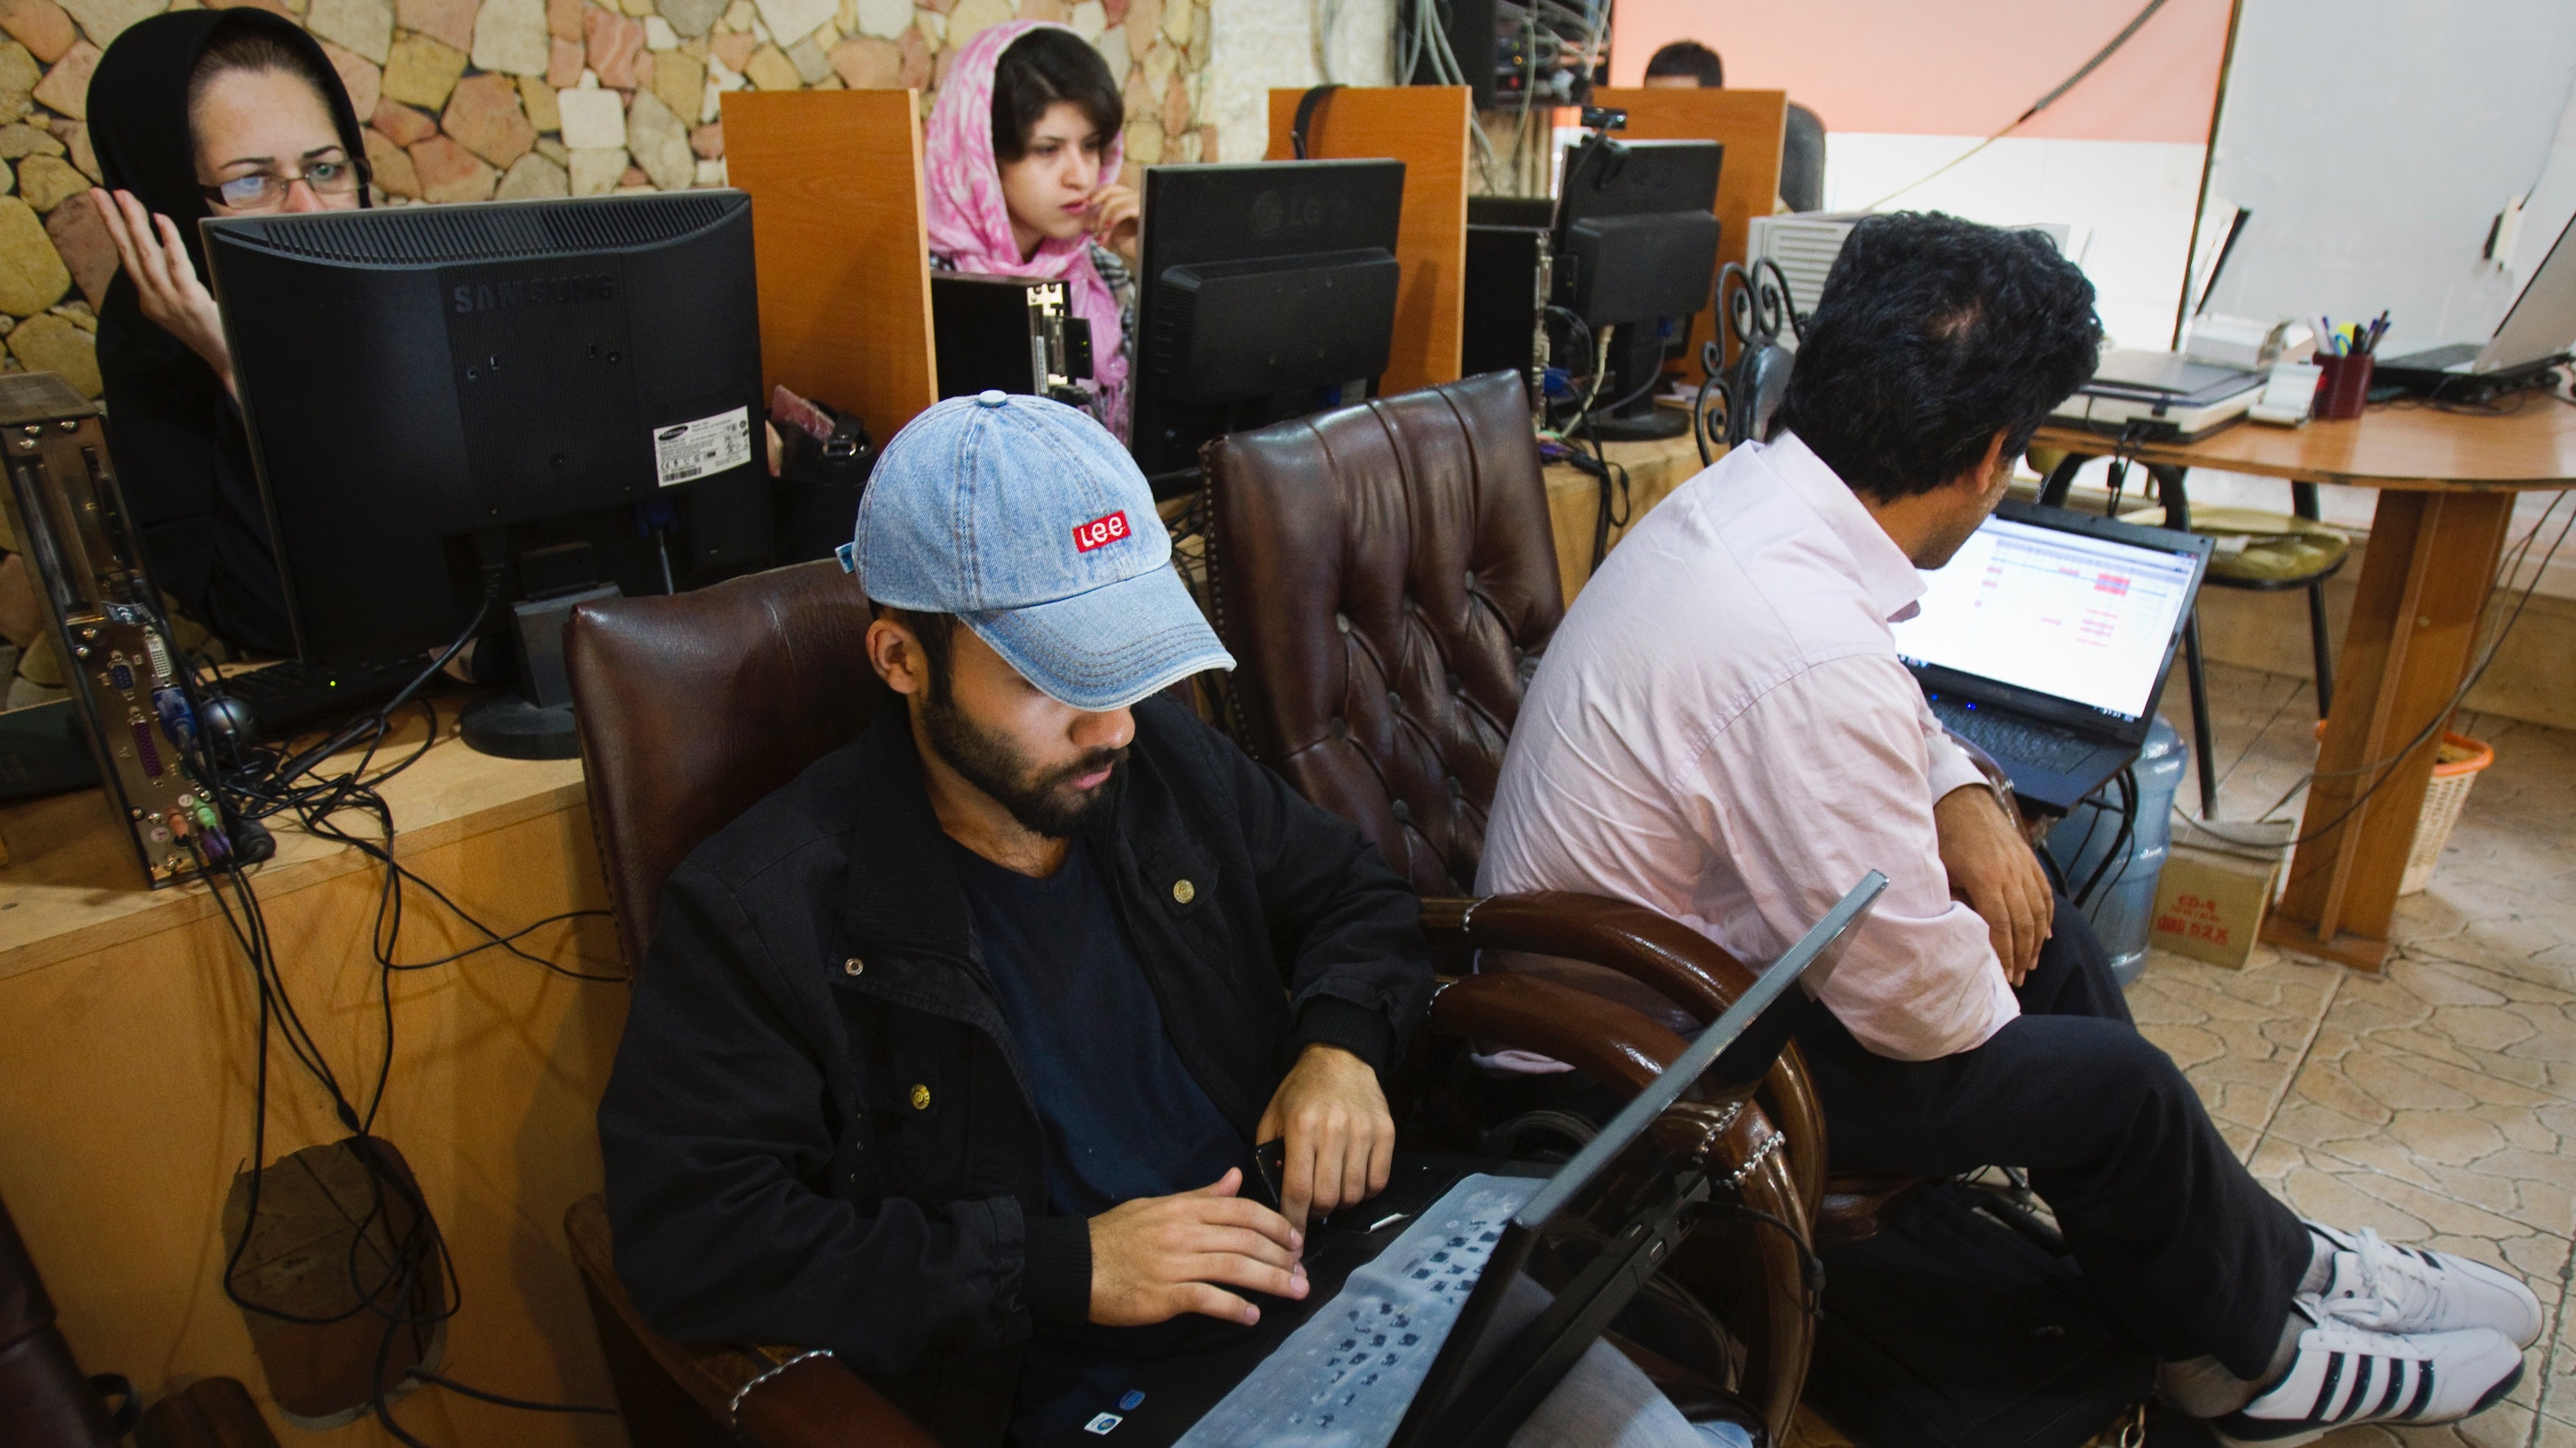 """Customers use computers at an internet cafe in Tehran May 9, 2011. Websites like Facebook, Twitter, YouTube and countless others were banned shortly after the re-election of Iran's President Mahmoud Ahmadinejad and the huge street protests that followed. Seen by the government as part of a """"soft war"""" waged by the enemies of the Islamic Republic, social networking and picture sharing sites were a vital communication tool for the anti-Ahmadinejad opposition -- more than a year before they played a similar role in the popular uprisings that toppled Arab dictatorships in Tunisia and Egypt. In Iran, trying to access Facebook on a normal Internet line will redirect the user to a filter page, which says blocked sites are those considered criminal, that offend """"Islamic sanctities"""" or insult public and government officials. But, for many Iranians, bypassing the government filter is as easy as switching on the computer. Picture taken May 9, 2011.   To match Feature IRAN-INTERNET/         REUTERS/Raheb Homavandi (IRAN - Tags: MEDIA SOCIETY SCI TECH POLITICS) - RTR2MB5Q"""